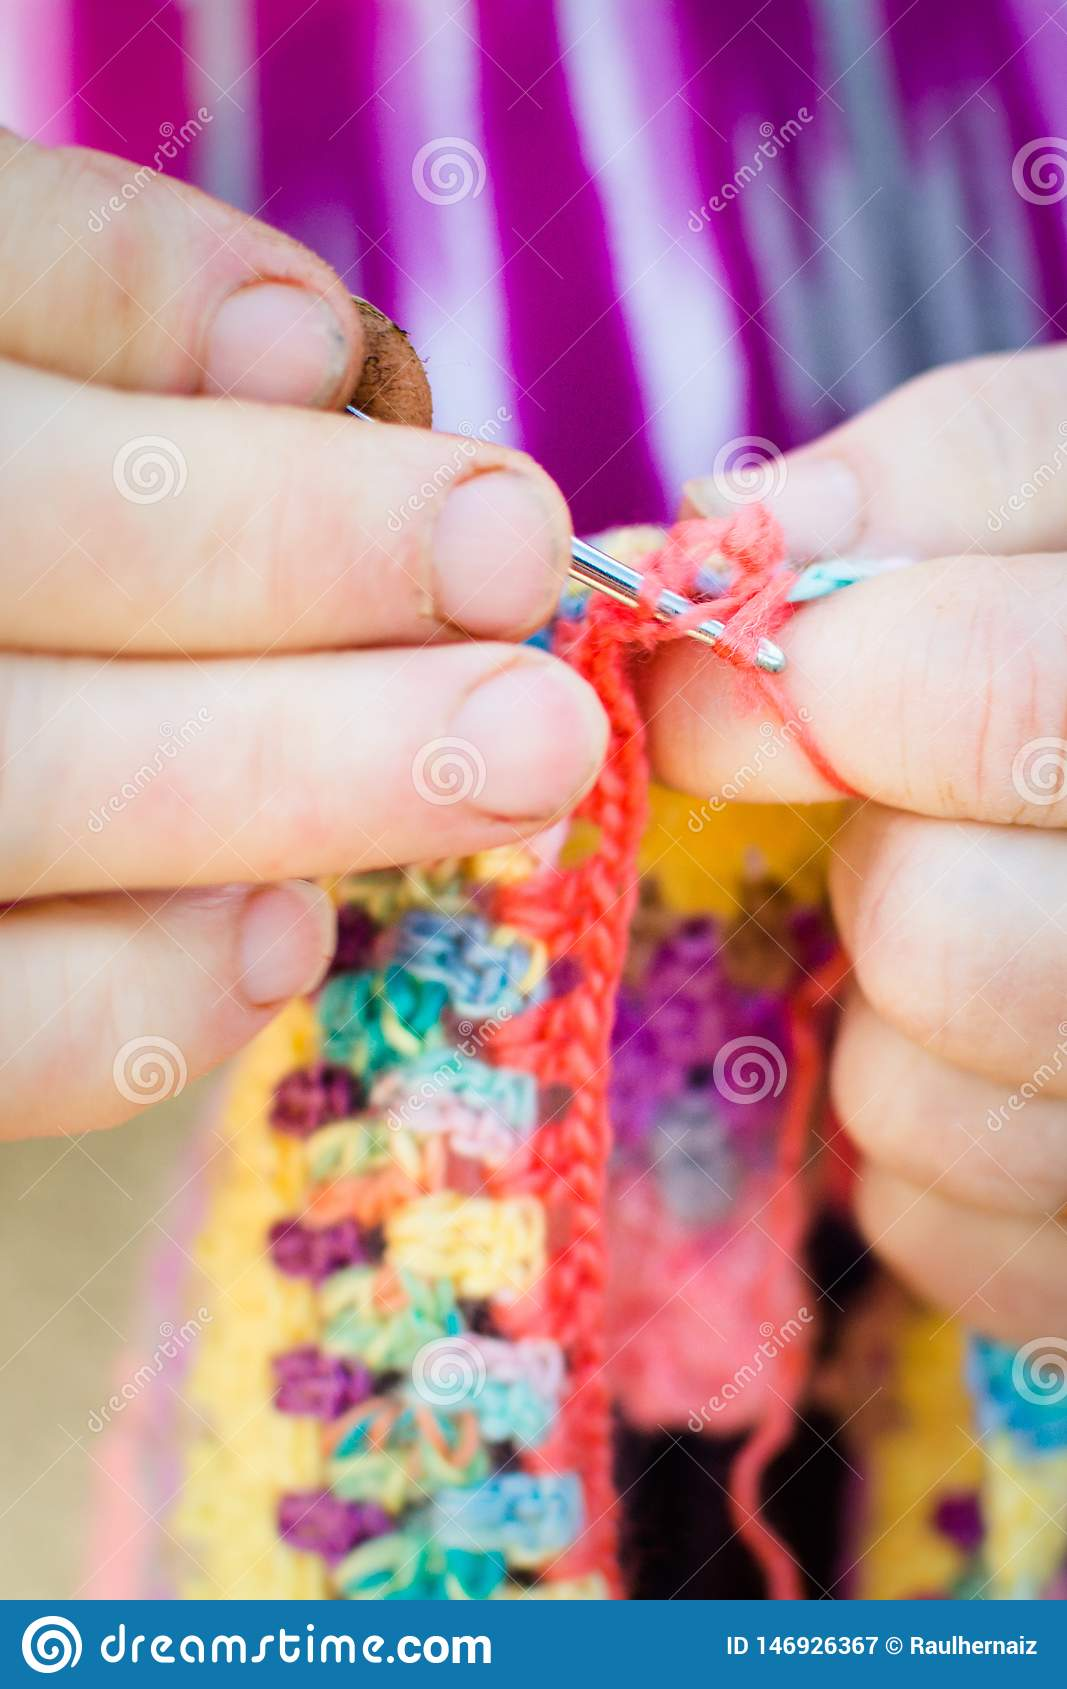 Hands close-up of an old lady knitting on knitting needles, using colorful wool